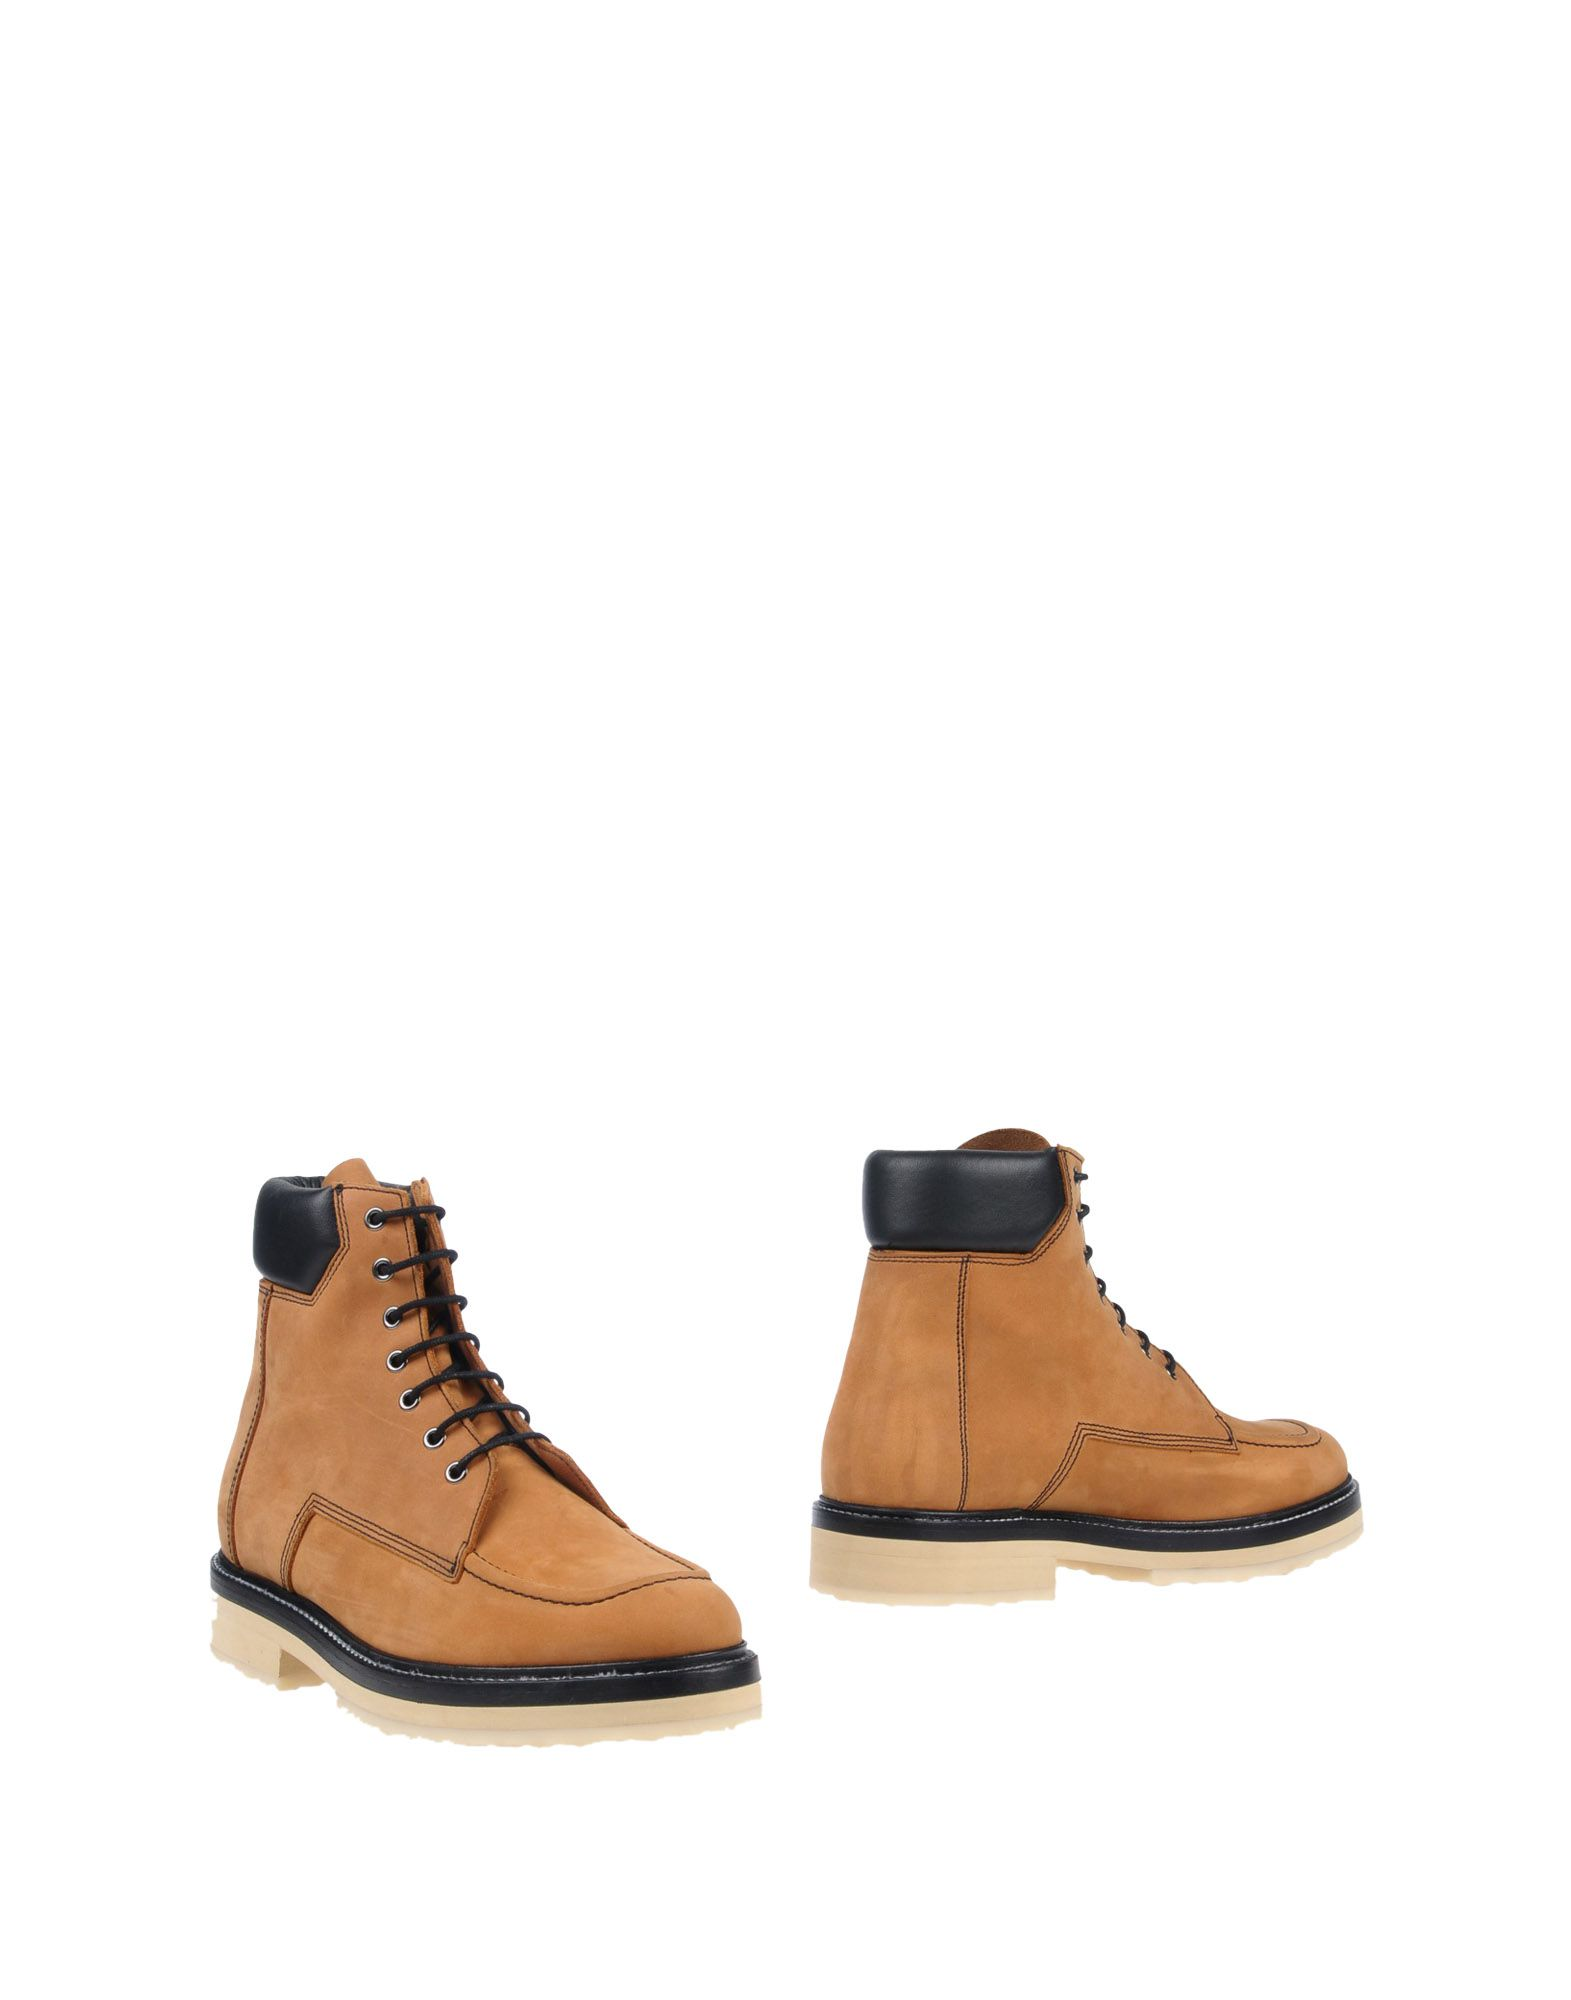 Bottine Pierre Hardy Homme - Bottines Pierre Hardy sur